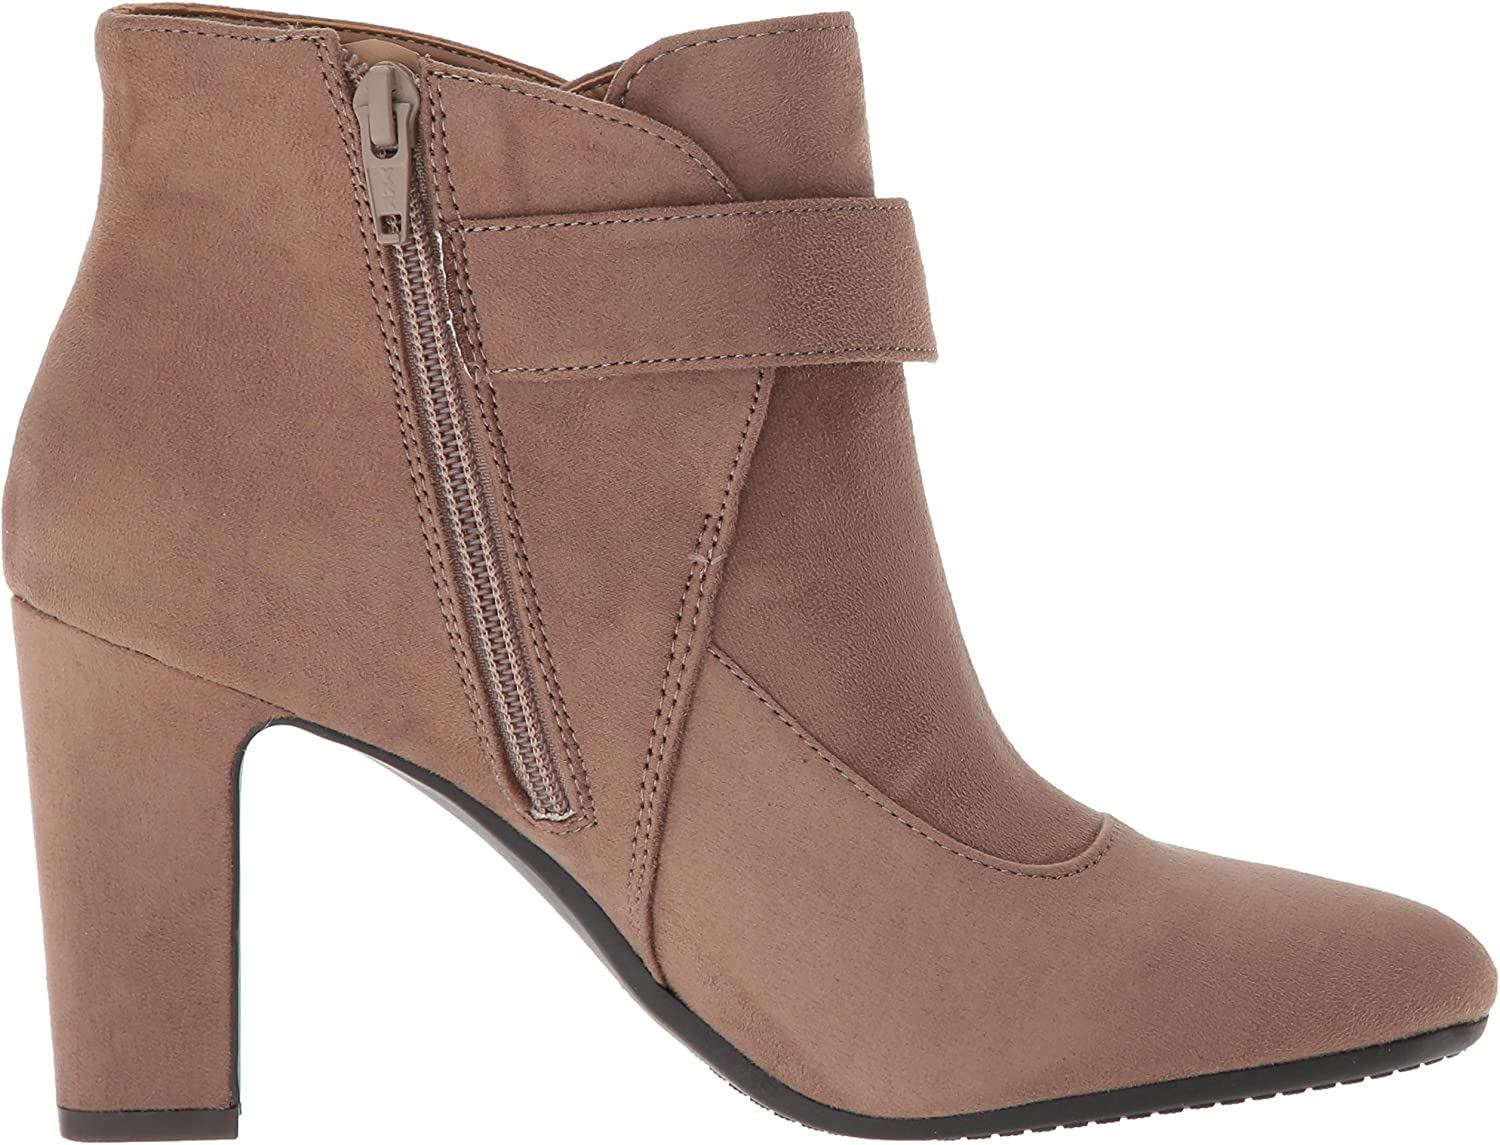 Aerosoles Women's Tag Team Ankle Boot Taupe Fabric Suede